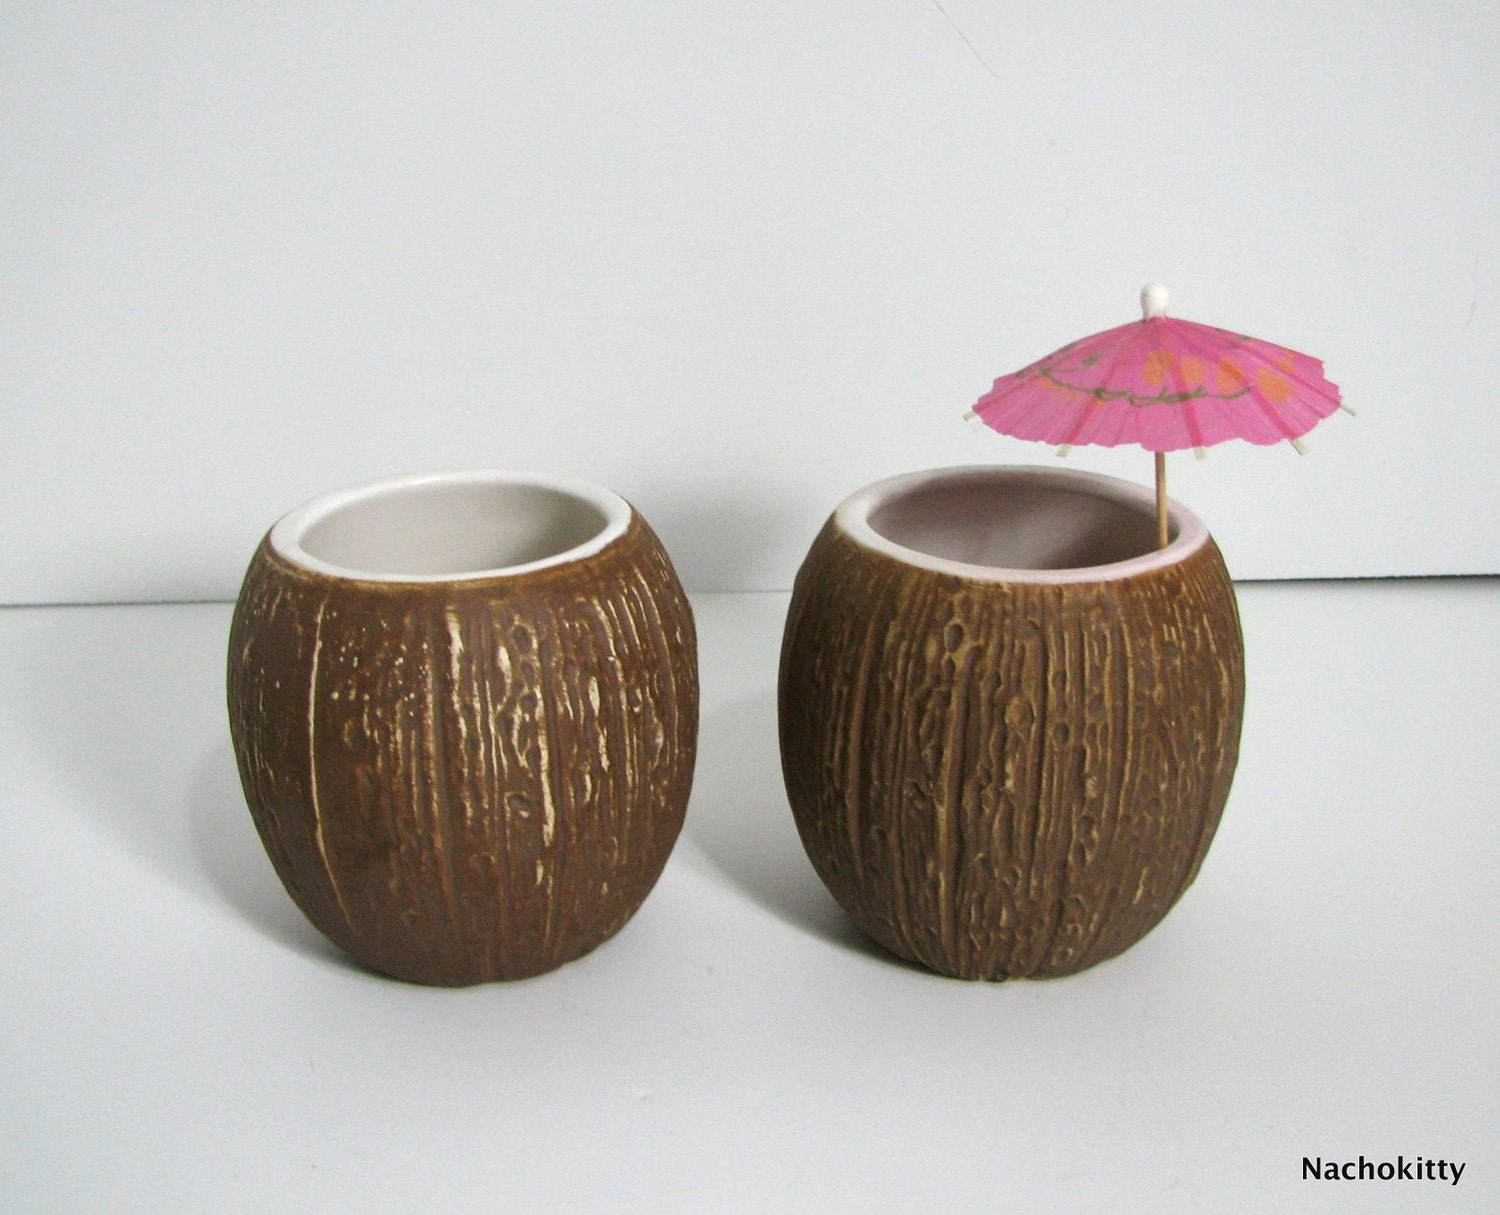 Vintage Tiki Coconut Cups Islander also Collection additionally Cherry 2000 further Rare Maserati And Bugatti Grabs Bonhams Chantilly Sale Video additionally Jonathan Pryce Quotes. on art from the 1950s